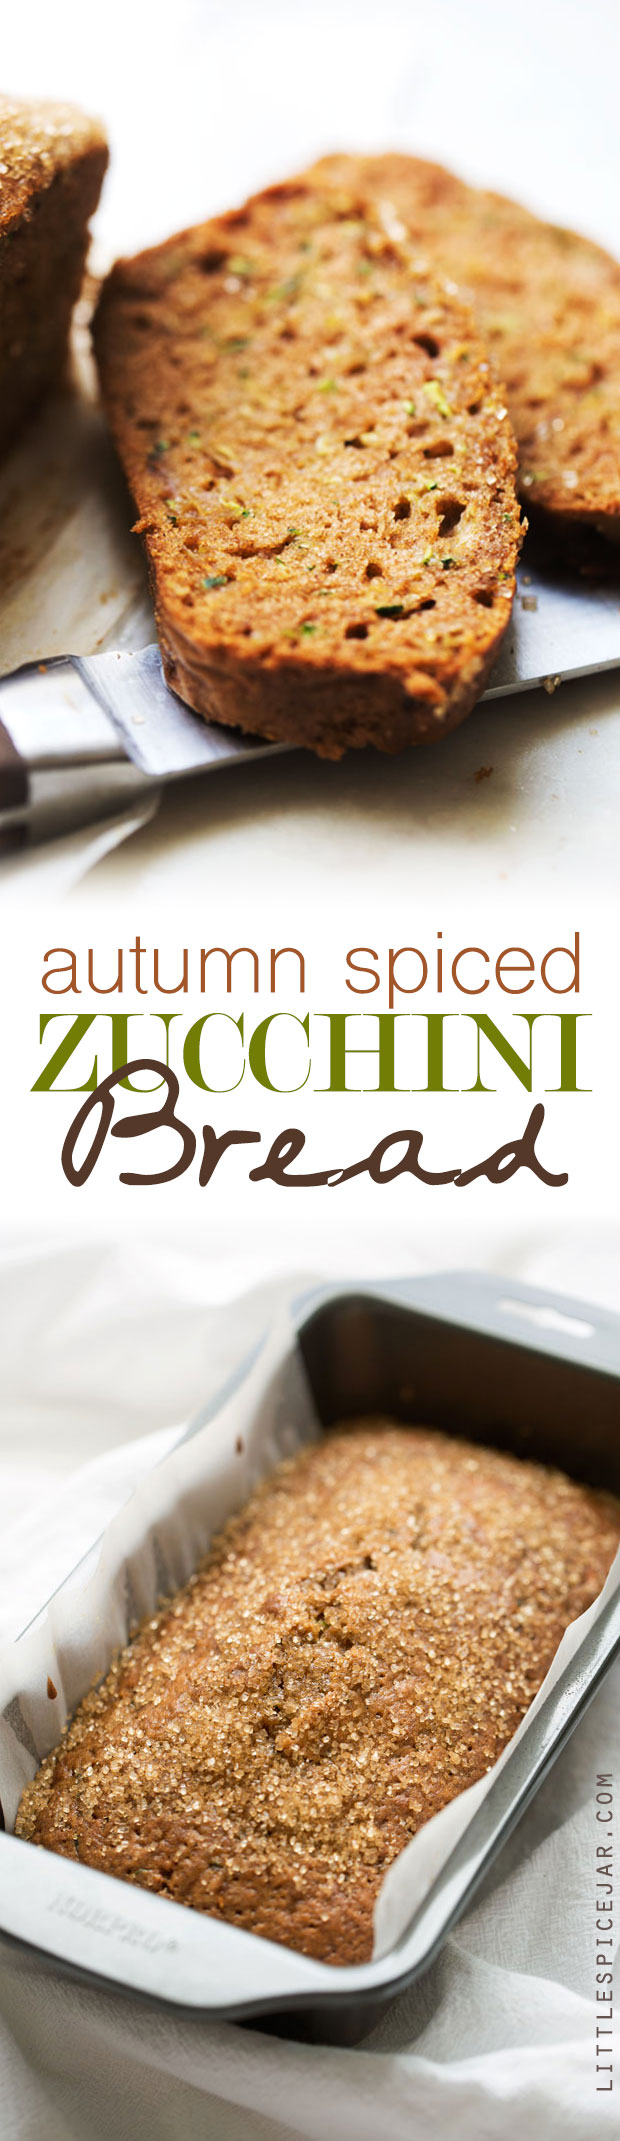 Autumn Spiced Zucchini bread -- made with warm spiced and topped with a crunchy sugar topping. The most delicious loaf you'll make this fall! #zucchinibread #zucchiniloaf #spicedbread | Littlespicejar.com